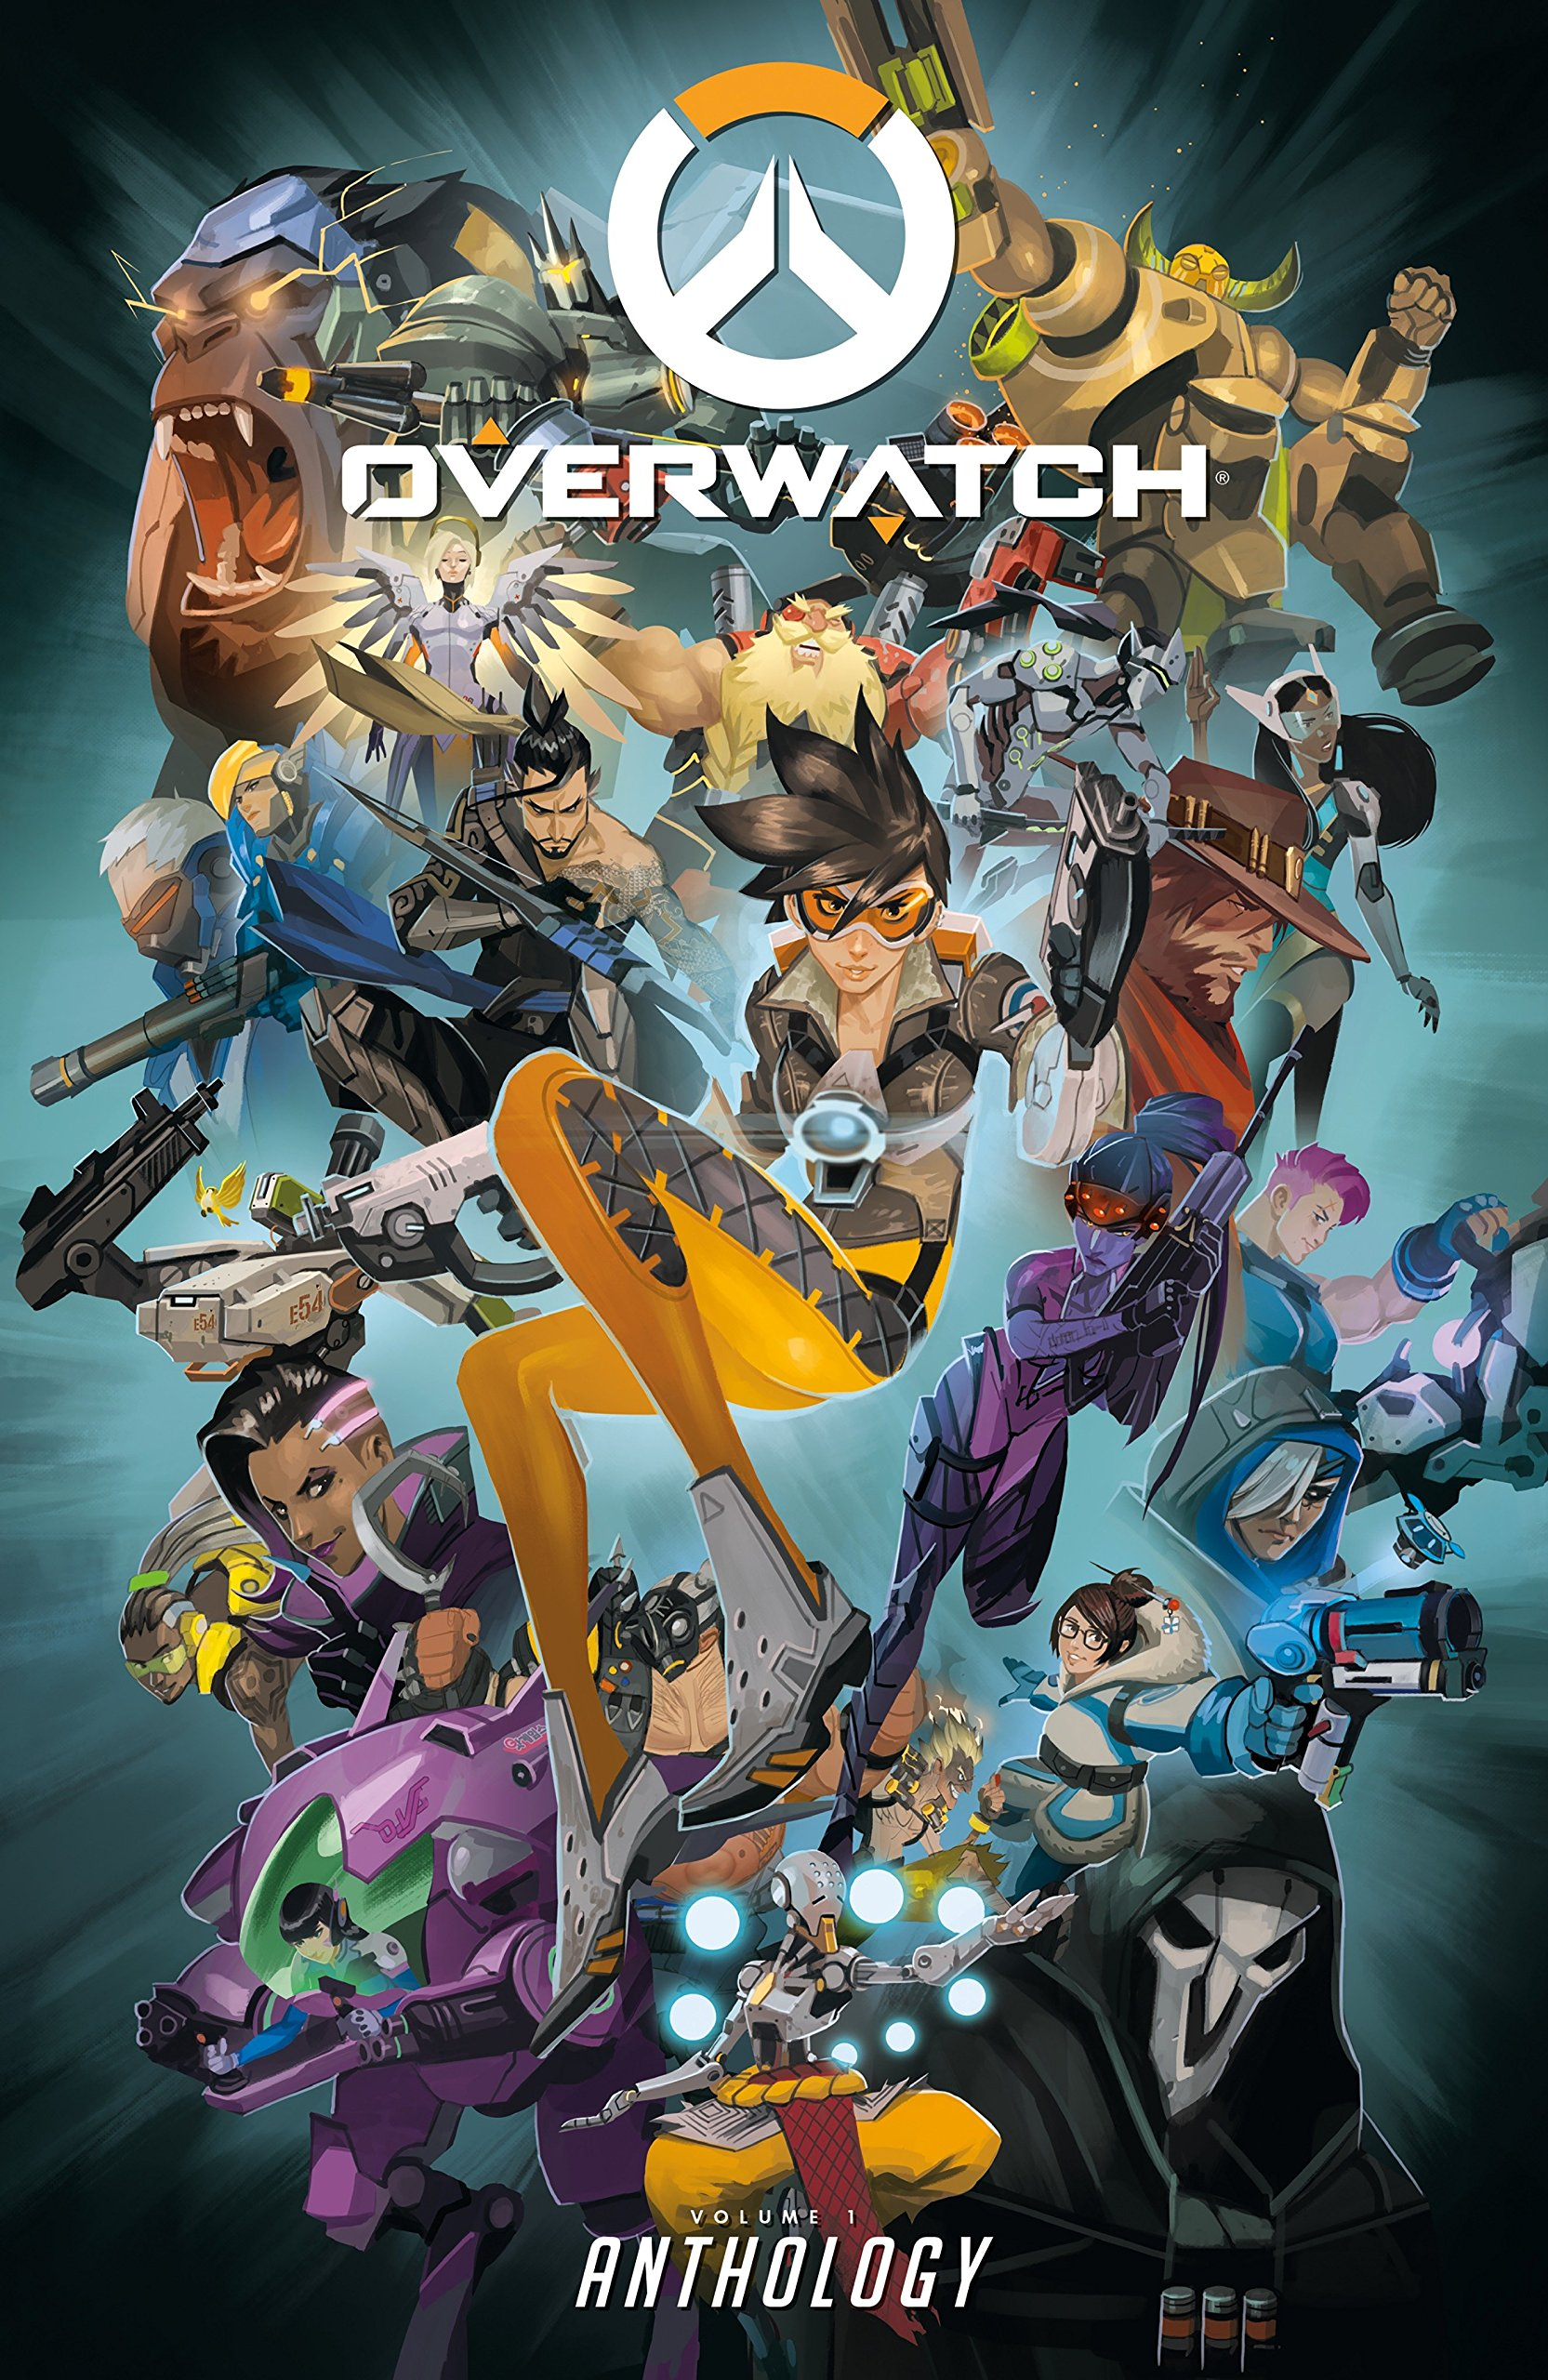 Amazon Com Overwatch Anthology Volume 1 9781506705408 Blizzard Entertainment Burns Matt Brooks Roberts Robinson Andrew Neilson Micky Books